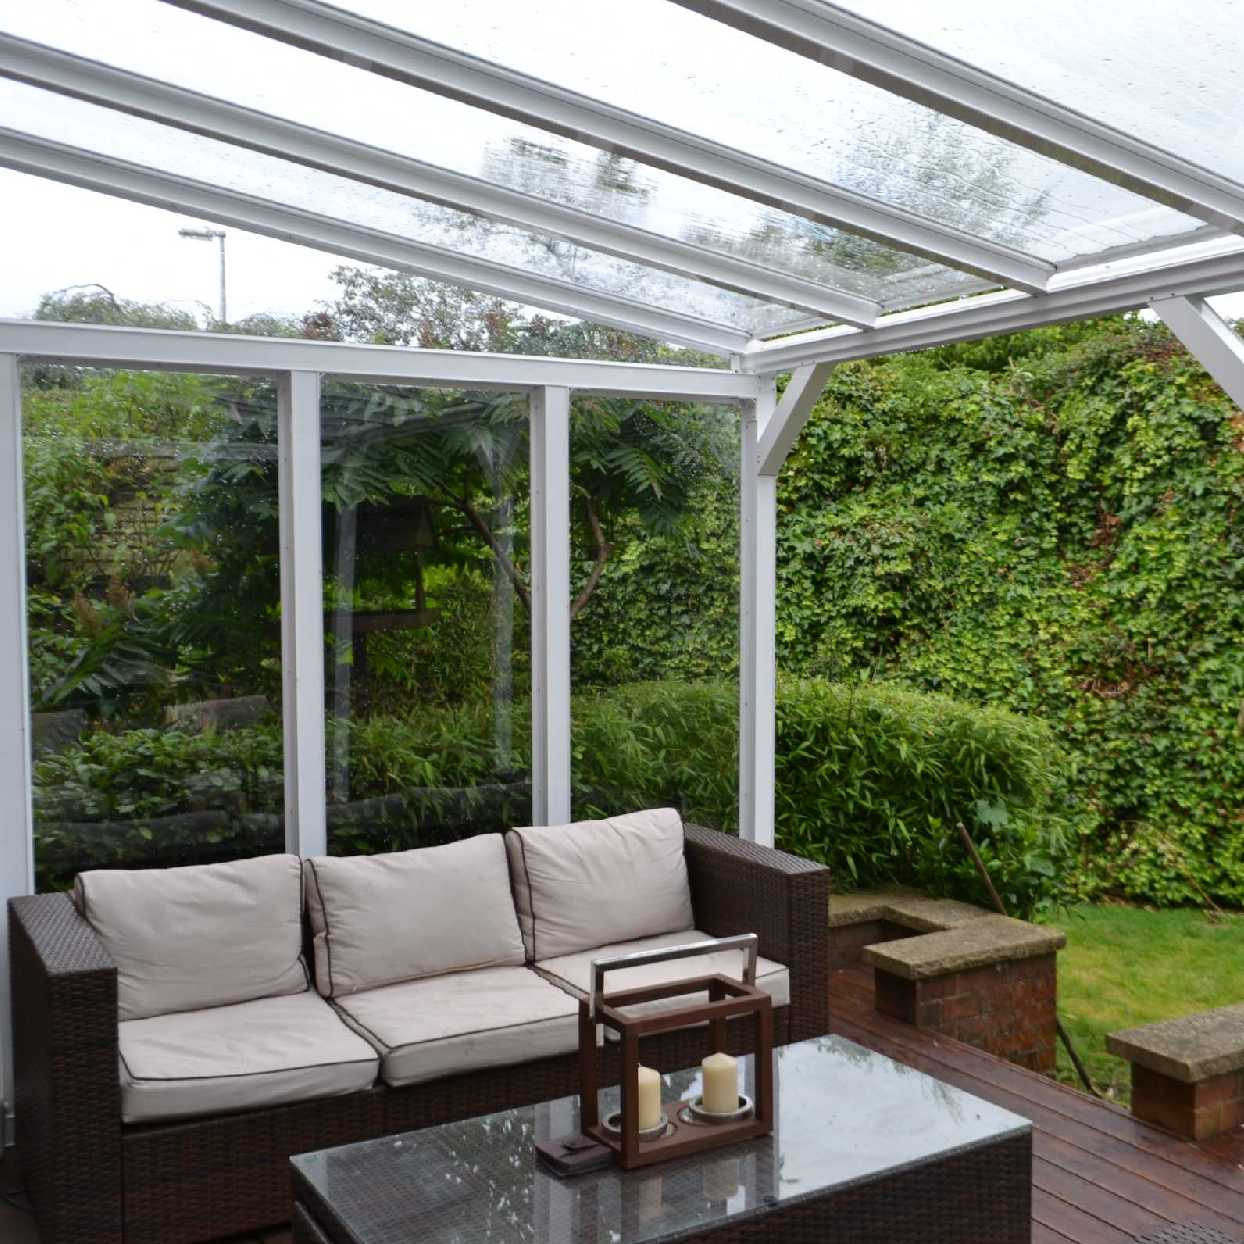 Omega Smart Lean-To Canopy with 6mm Glass Clear Plate Polycarbonate Glazing - 4.2m (W) x 3.5m (P), (3) Supporting Posts